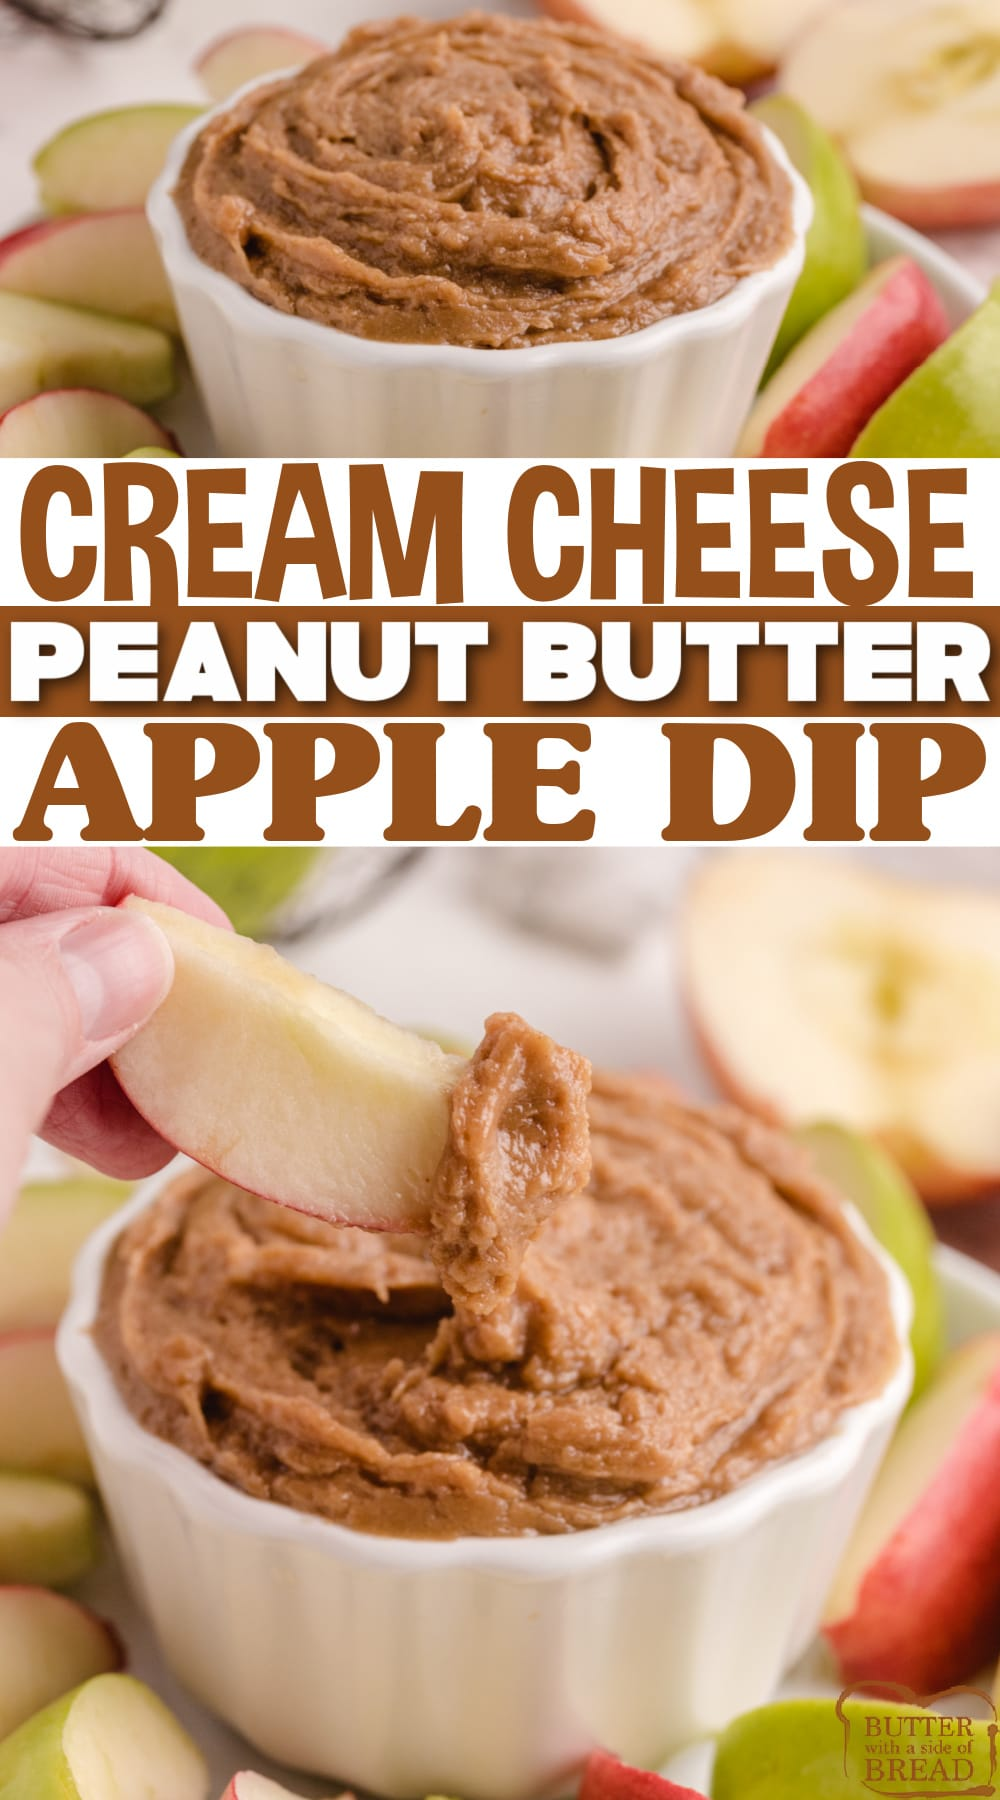 Peanut Butter Apple Dip is made with 5 simple ingredients and is perfect for a snack. Made with cream cheese, peanut butter, and brown sugar in less than 3 minutes!